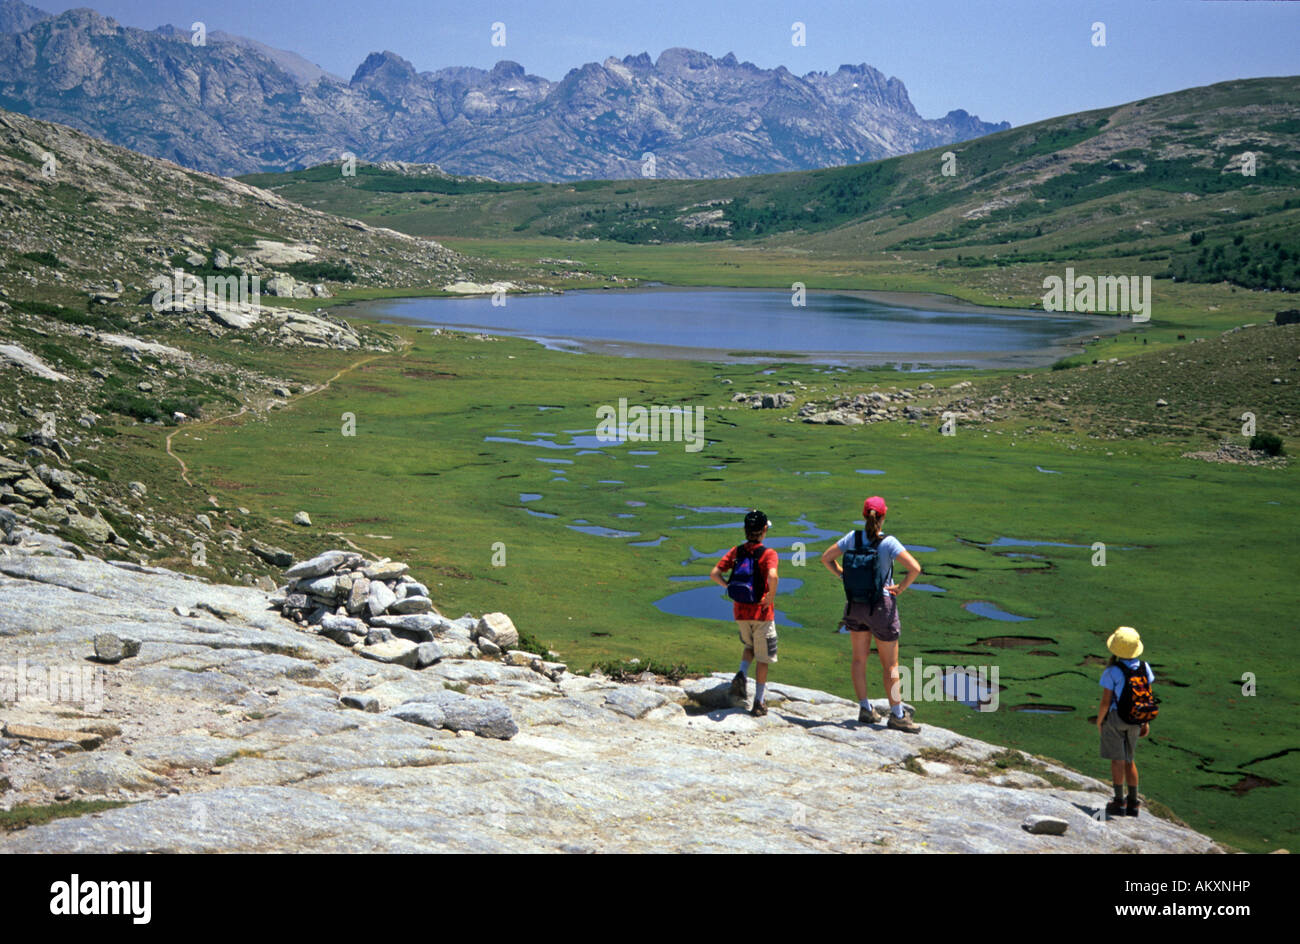 Hikers at the lake de Nino along the trekking route GR 20; Corse, France - Stock Image